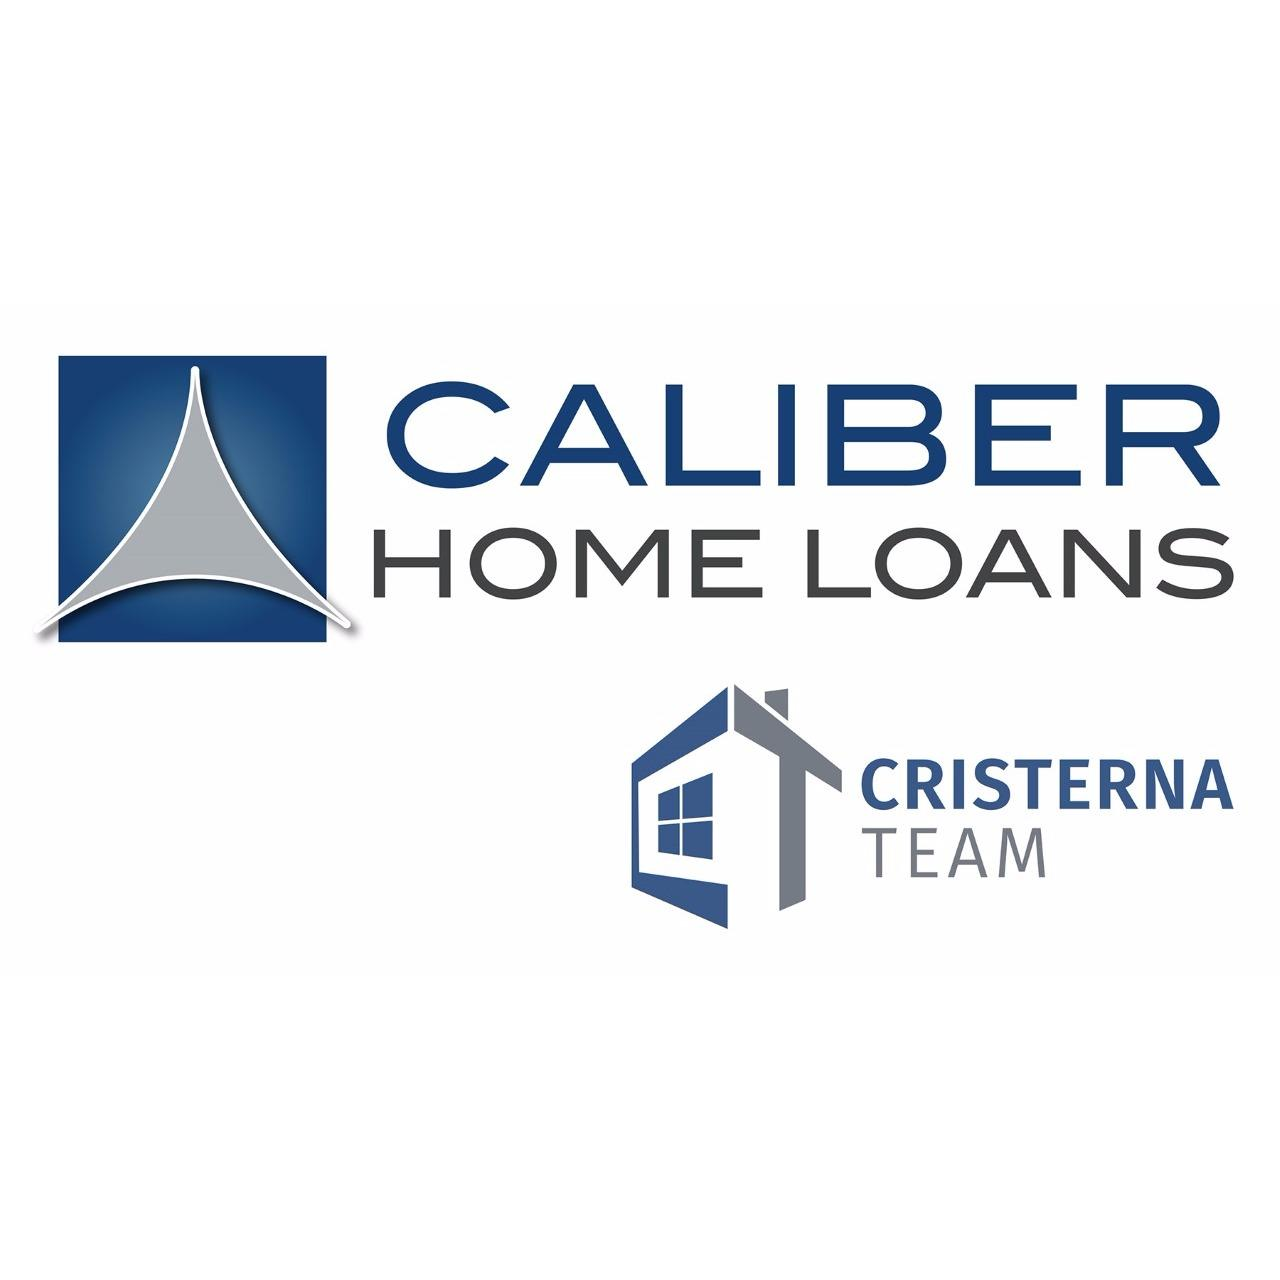 caliber home loans cristerna team coupons near me in gilbert 8coupons. Black Bedroom Furniture Sets. Home Design Ideas